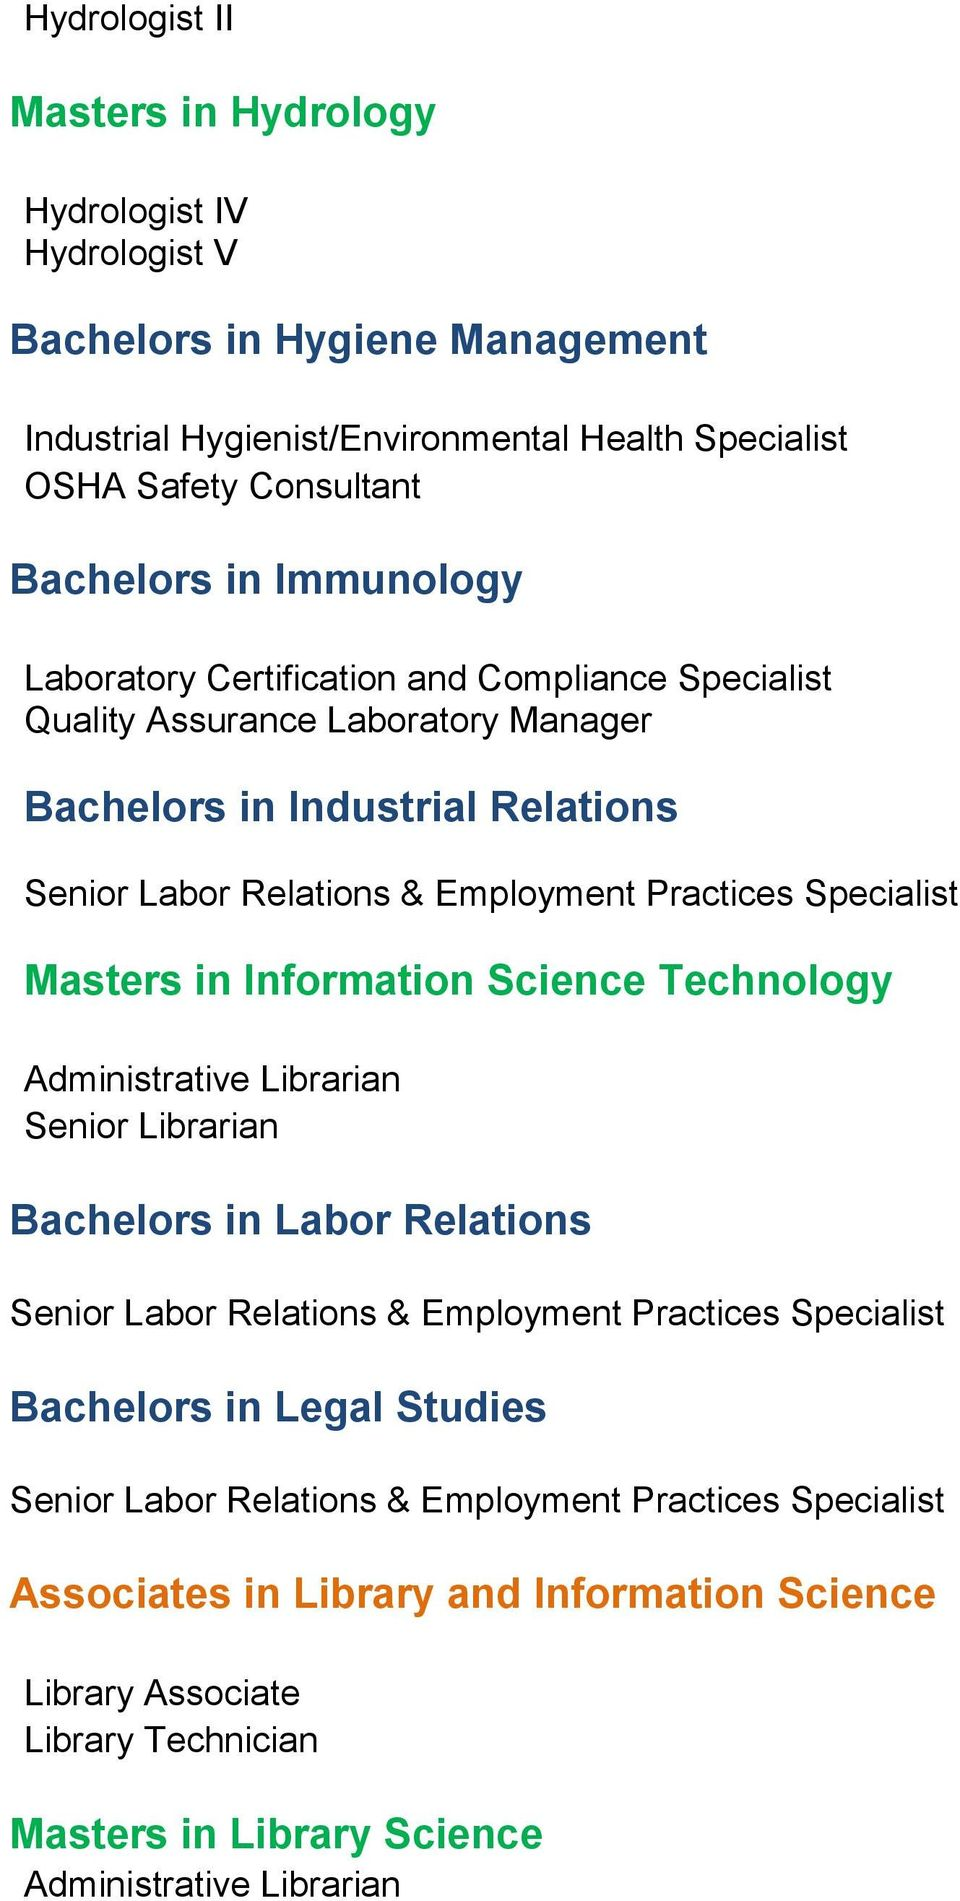 Masters in Information Science Technology Administrative Librarian Senior Librarian Bachelors in Labor Relations Senior Labor Relations & Employment Practices Specialist Bachelors in Legal